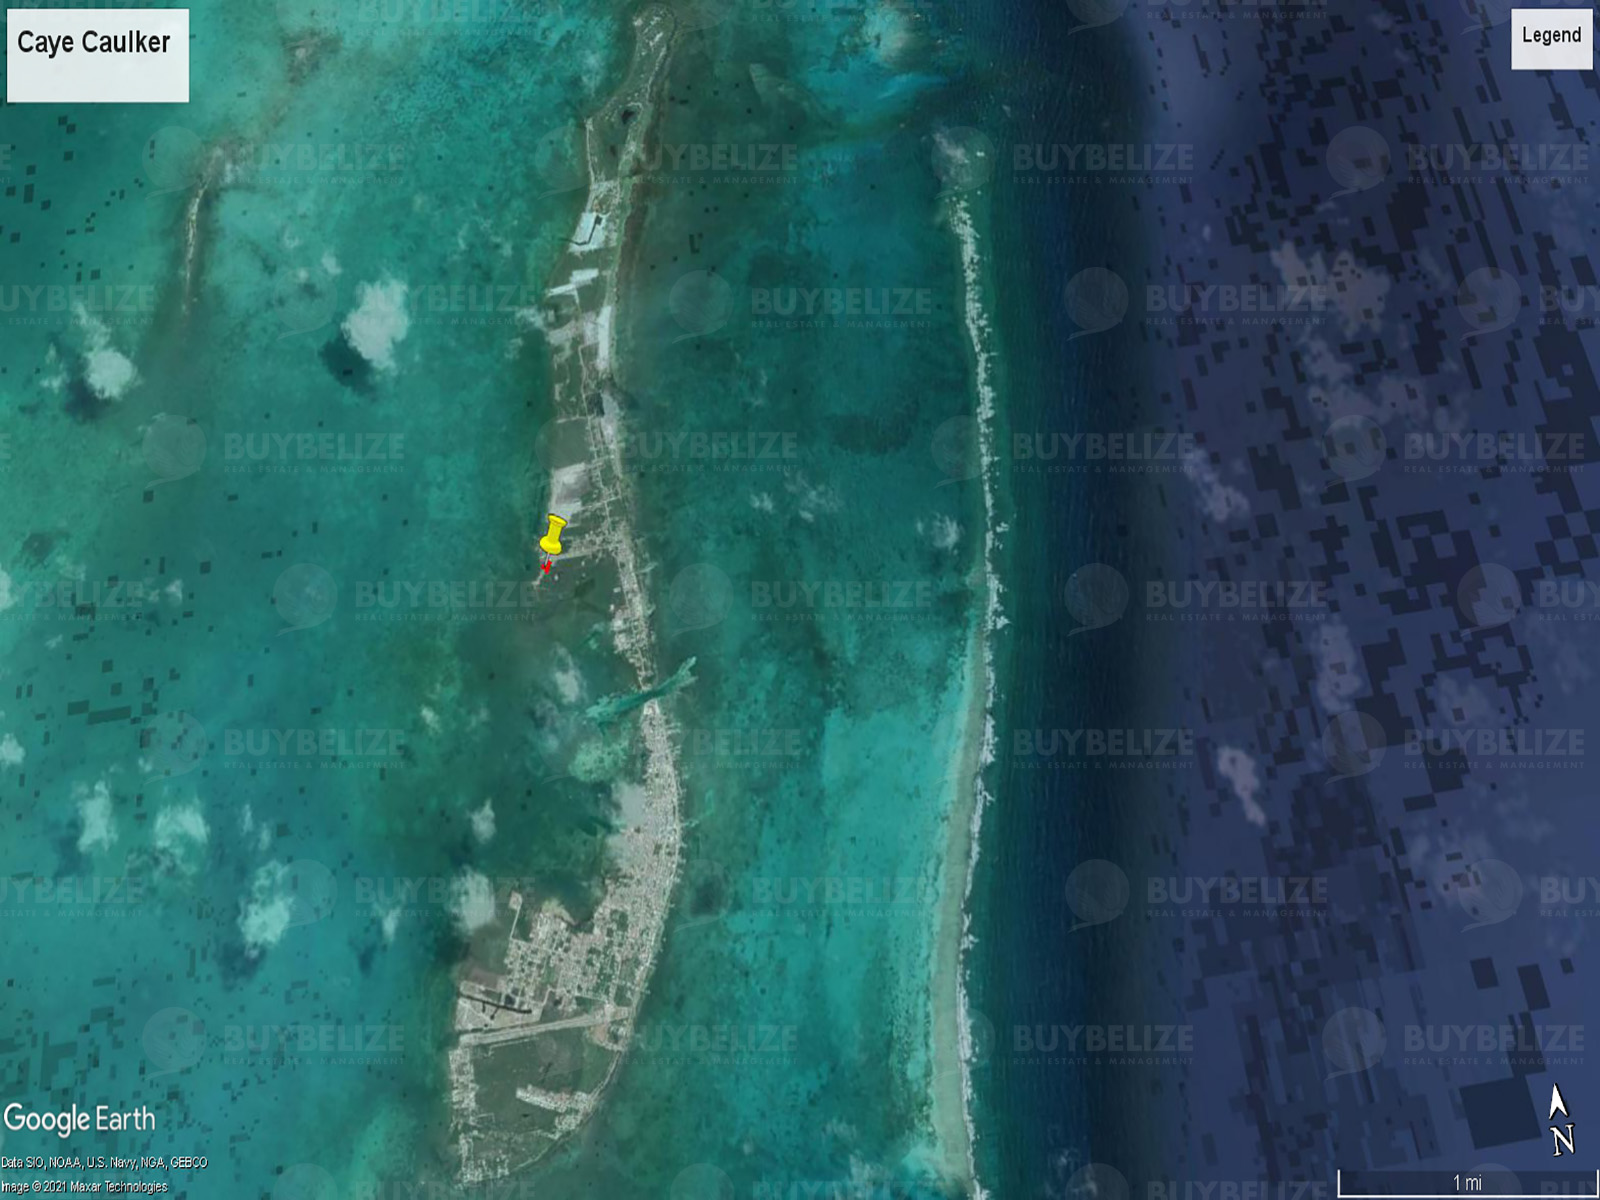 Beach Front Property For Sale in Caye Caulker